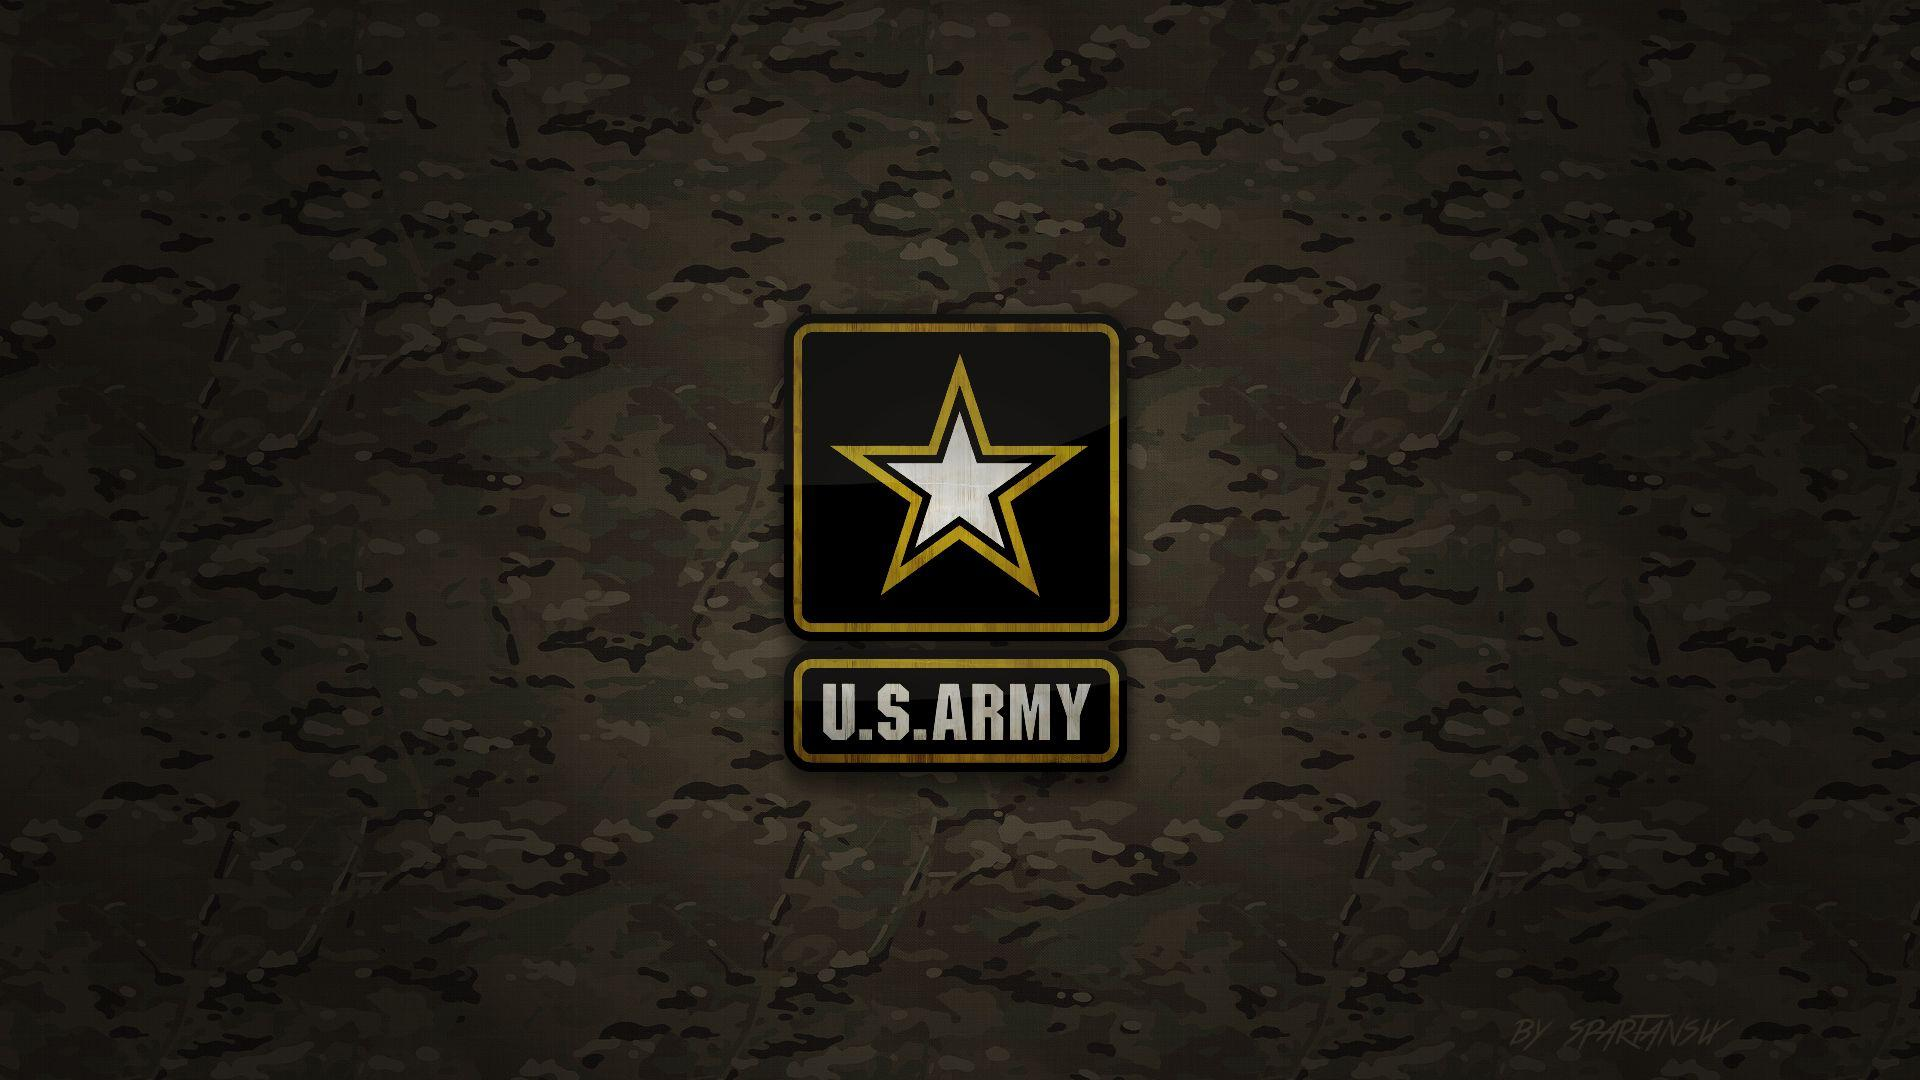 army logo wallpaper Group with 50 items